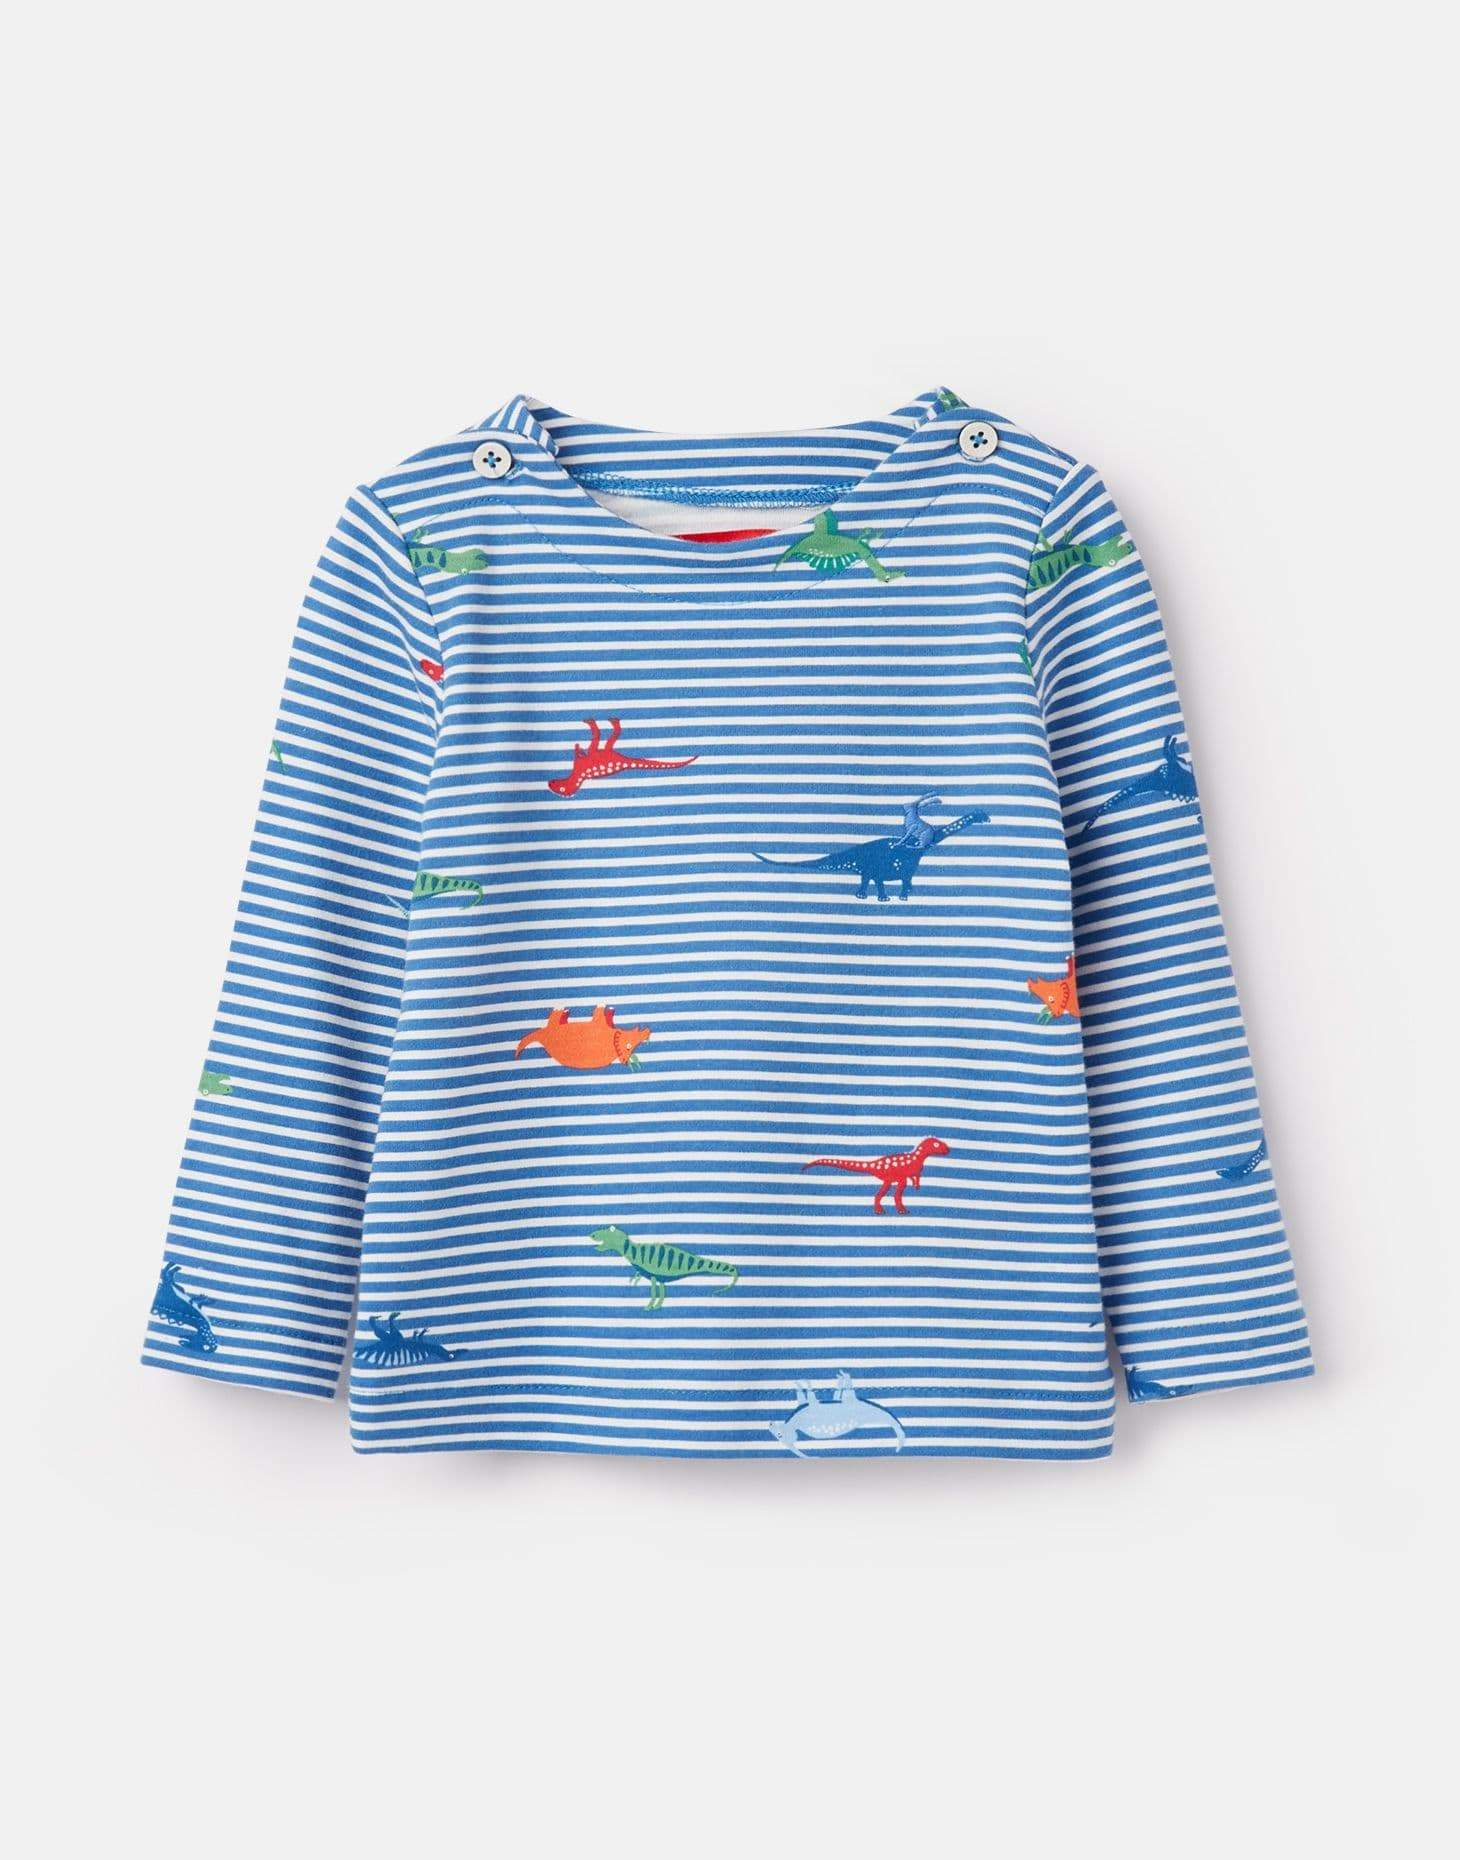 Joules Chandails Chandail bleu rayé avec dinosaures Striped blue shirt with dinosaurs